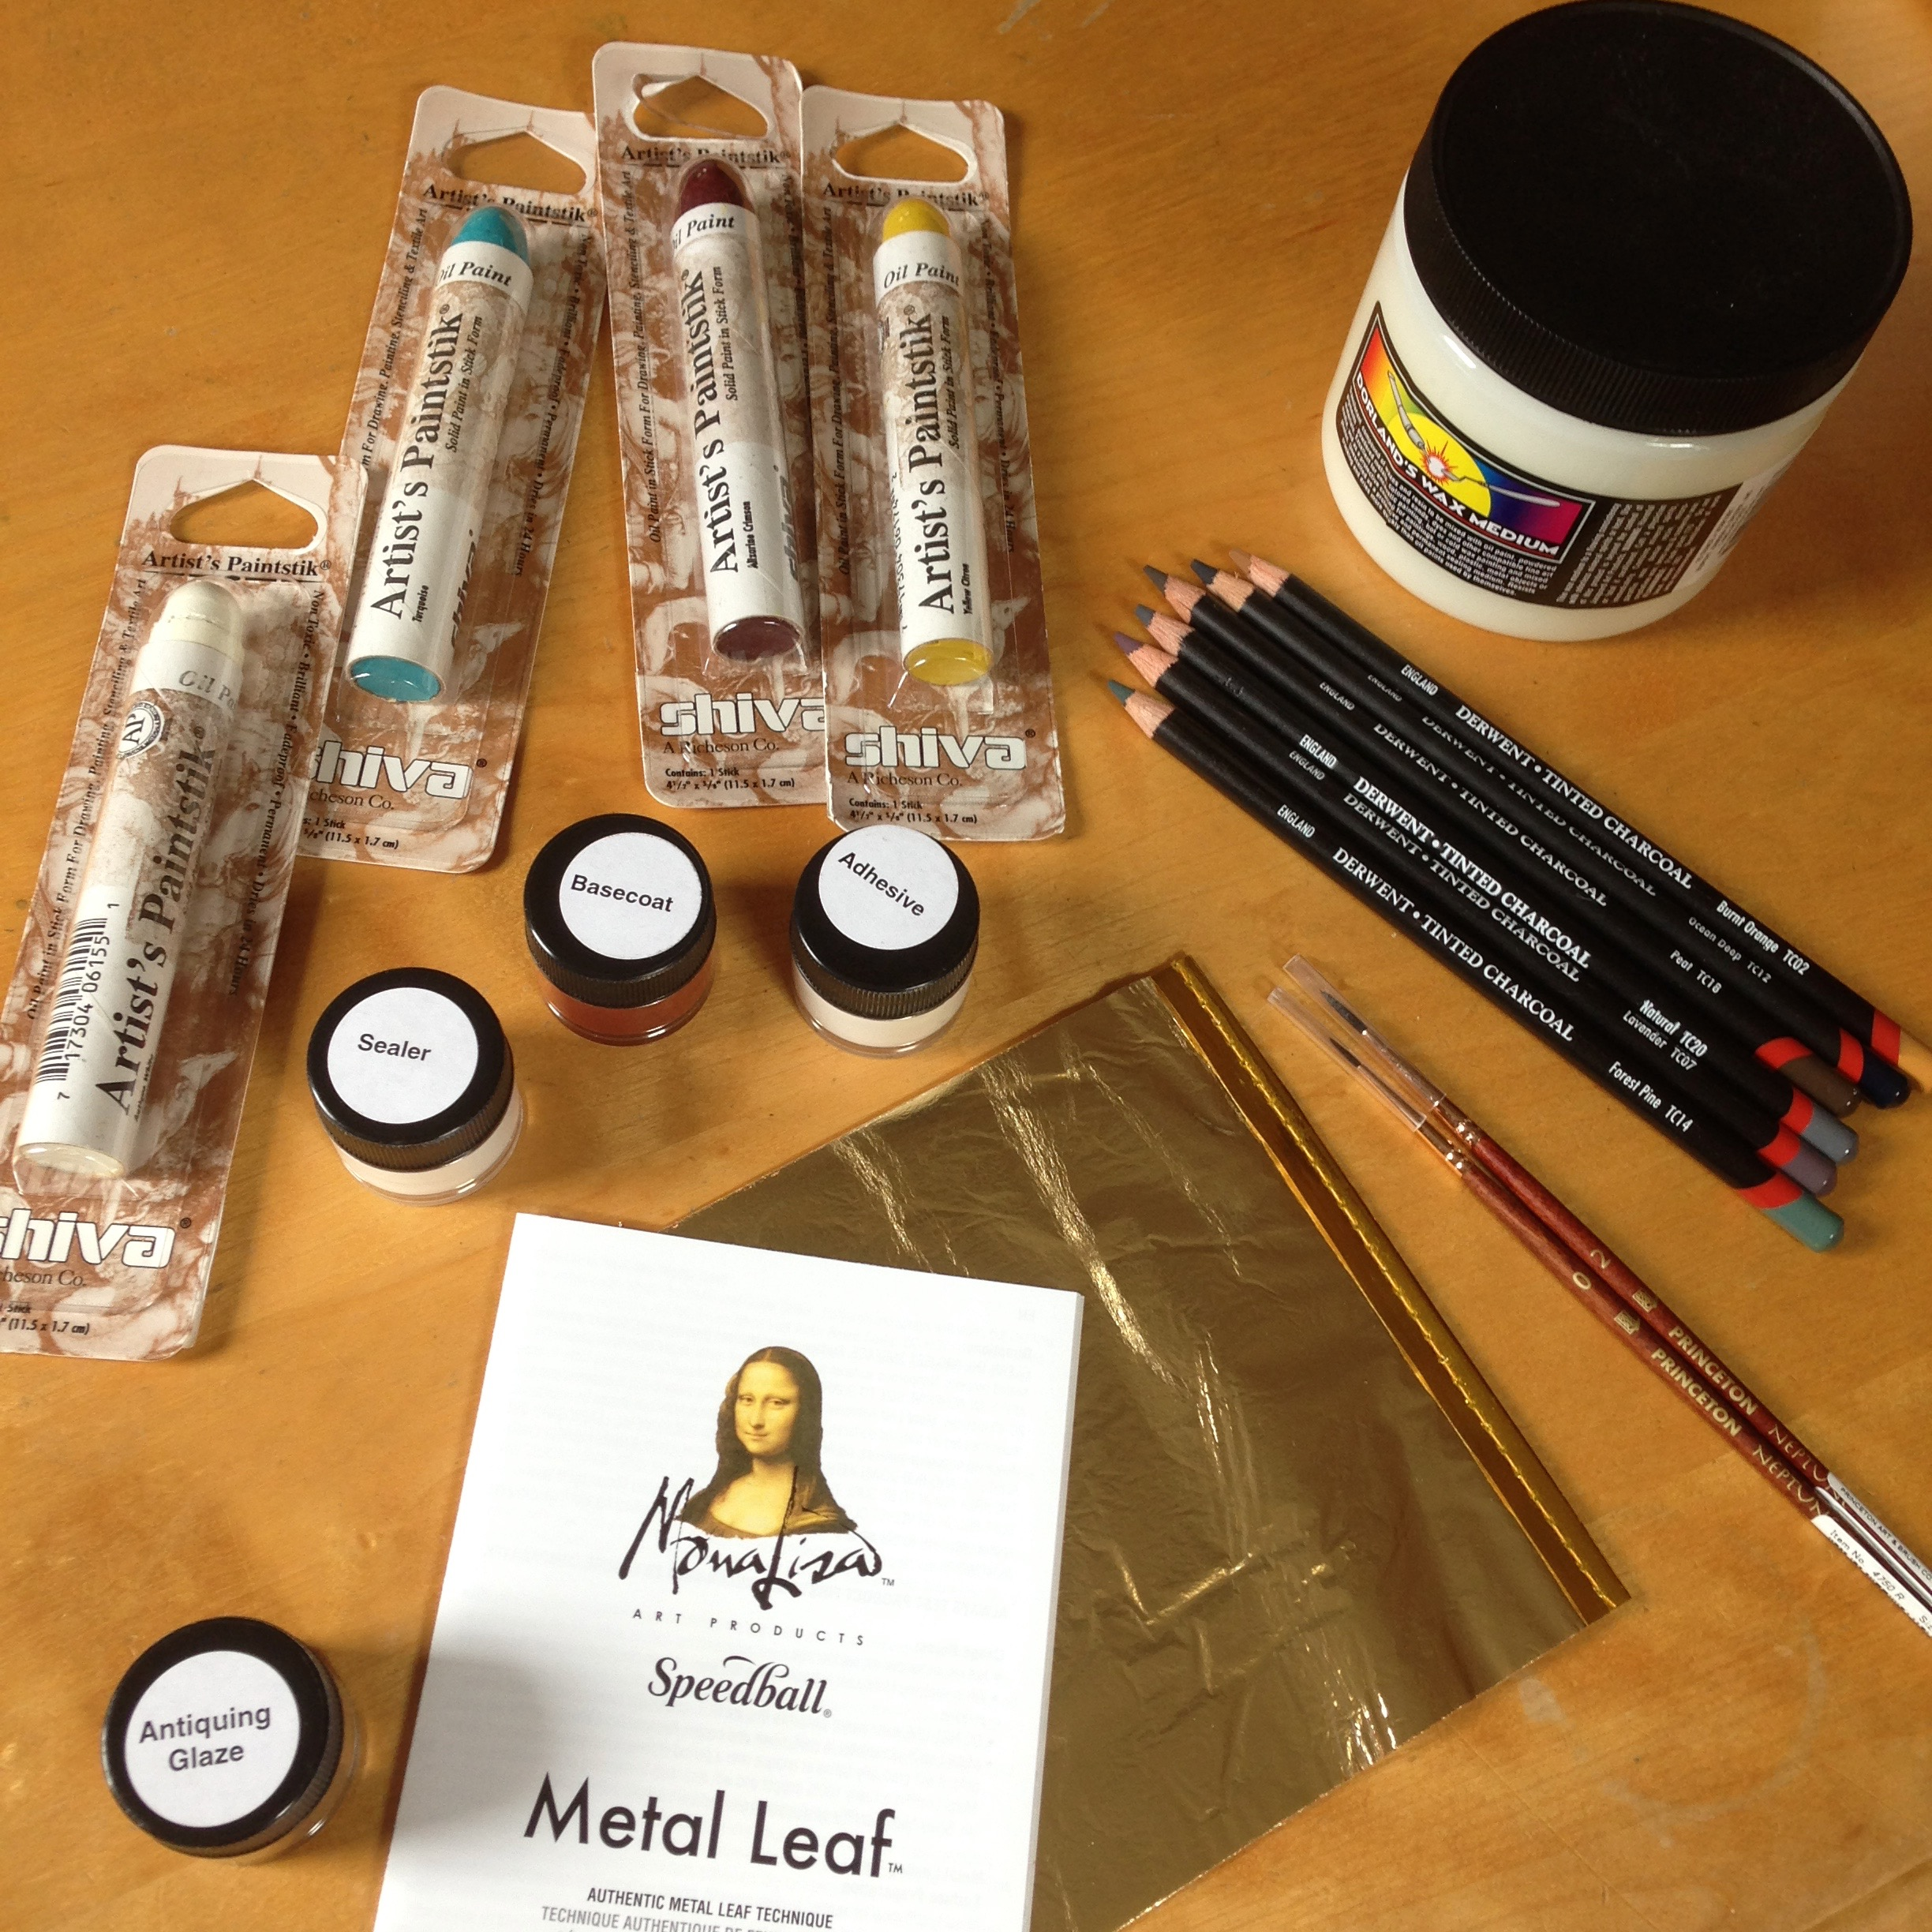 New art supplies I'm excited to share with you!